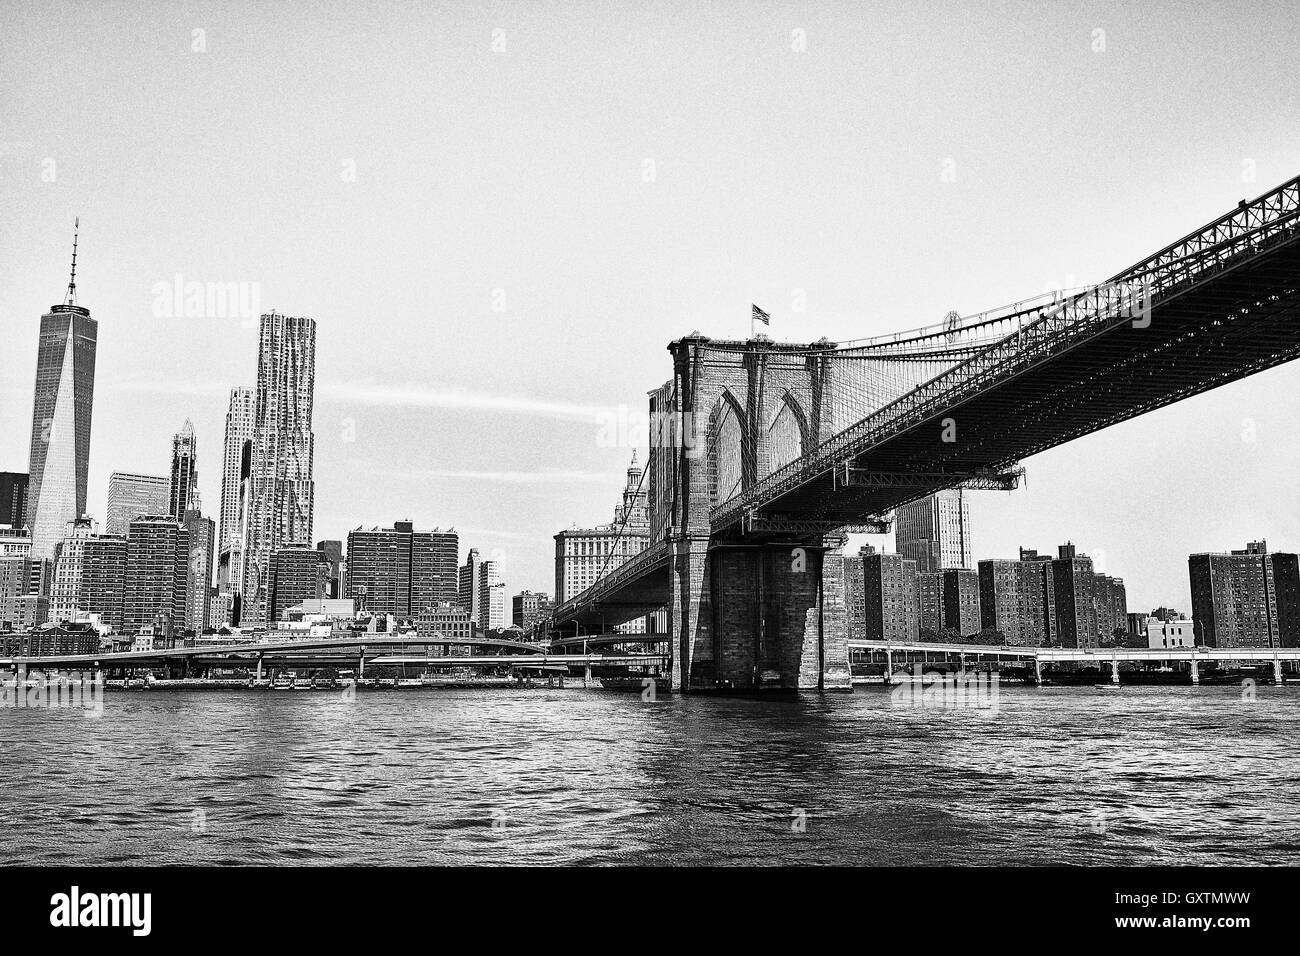 The Brooklyn Bridge, crossing over the East River into lower Manhattan Stock Photo